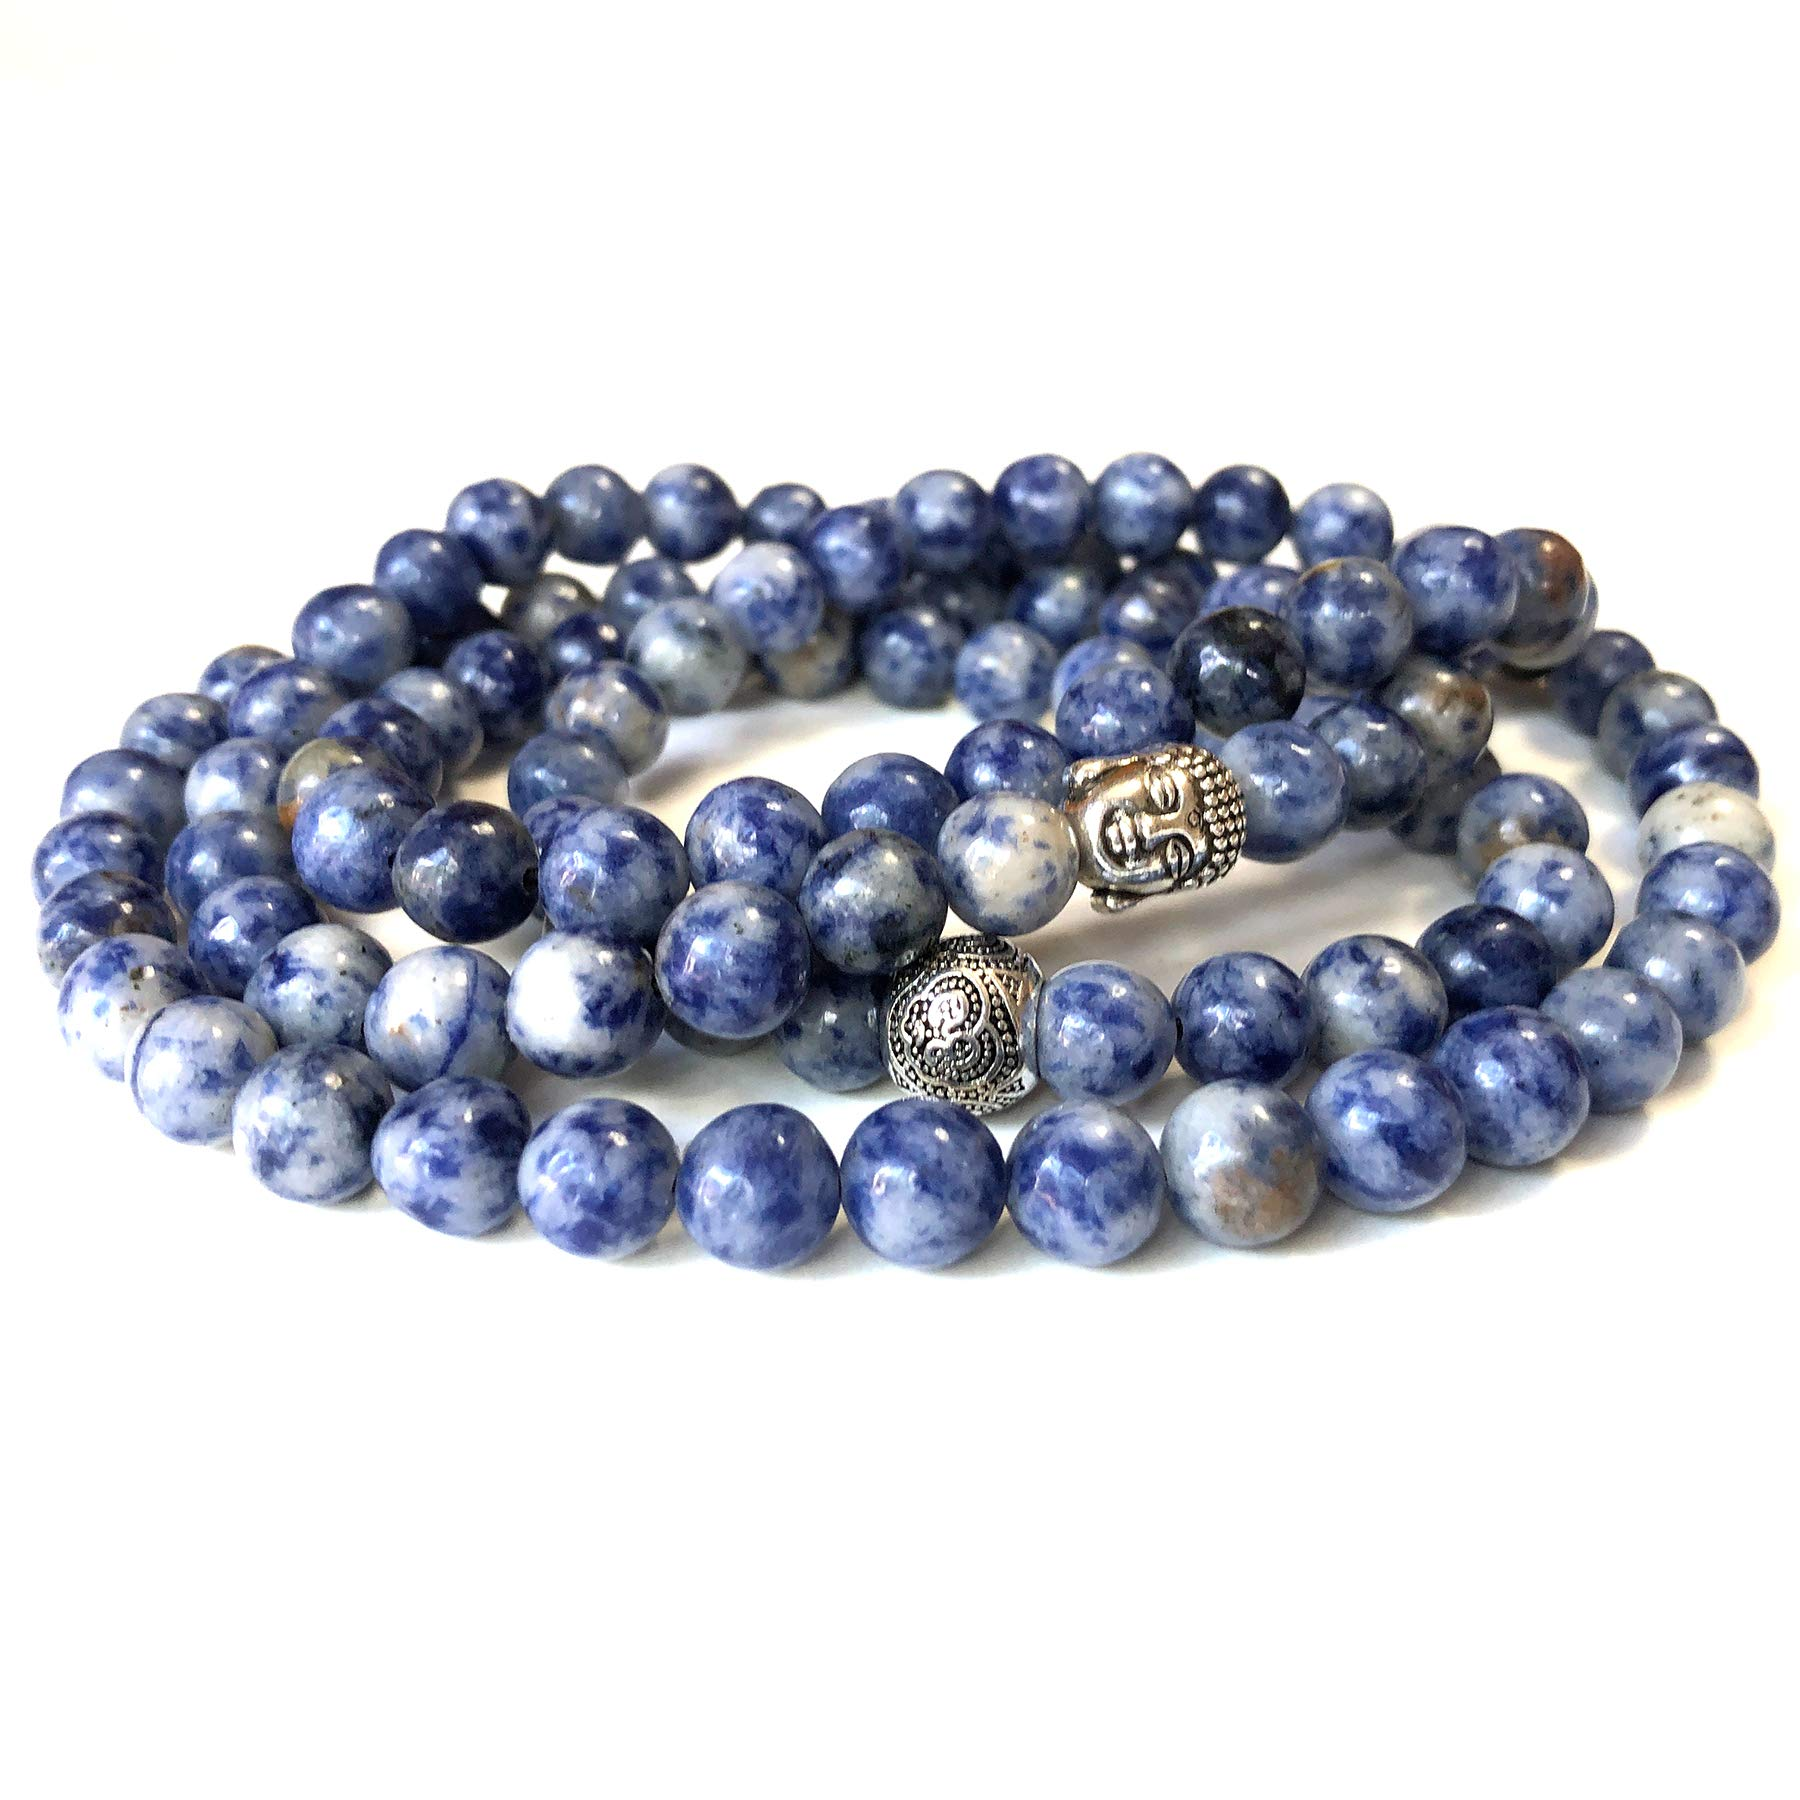 Agar Creations - 108 Bead Sodalite Gemstone 8mm Mala Beads - Yoga Meditation Mala Bracelet Necklace - Intuition Stone by Agar Creations